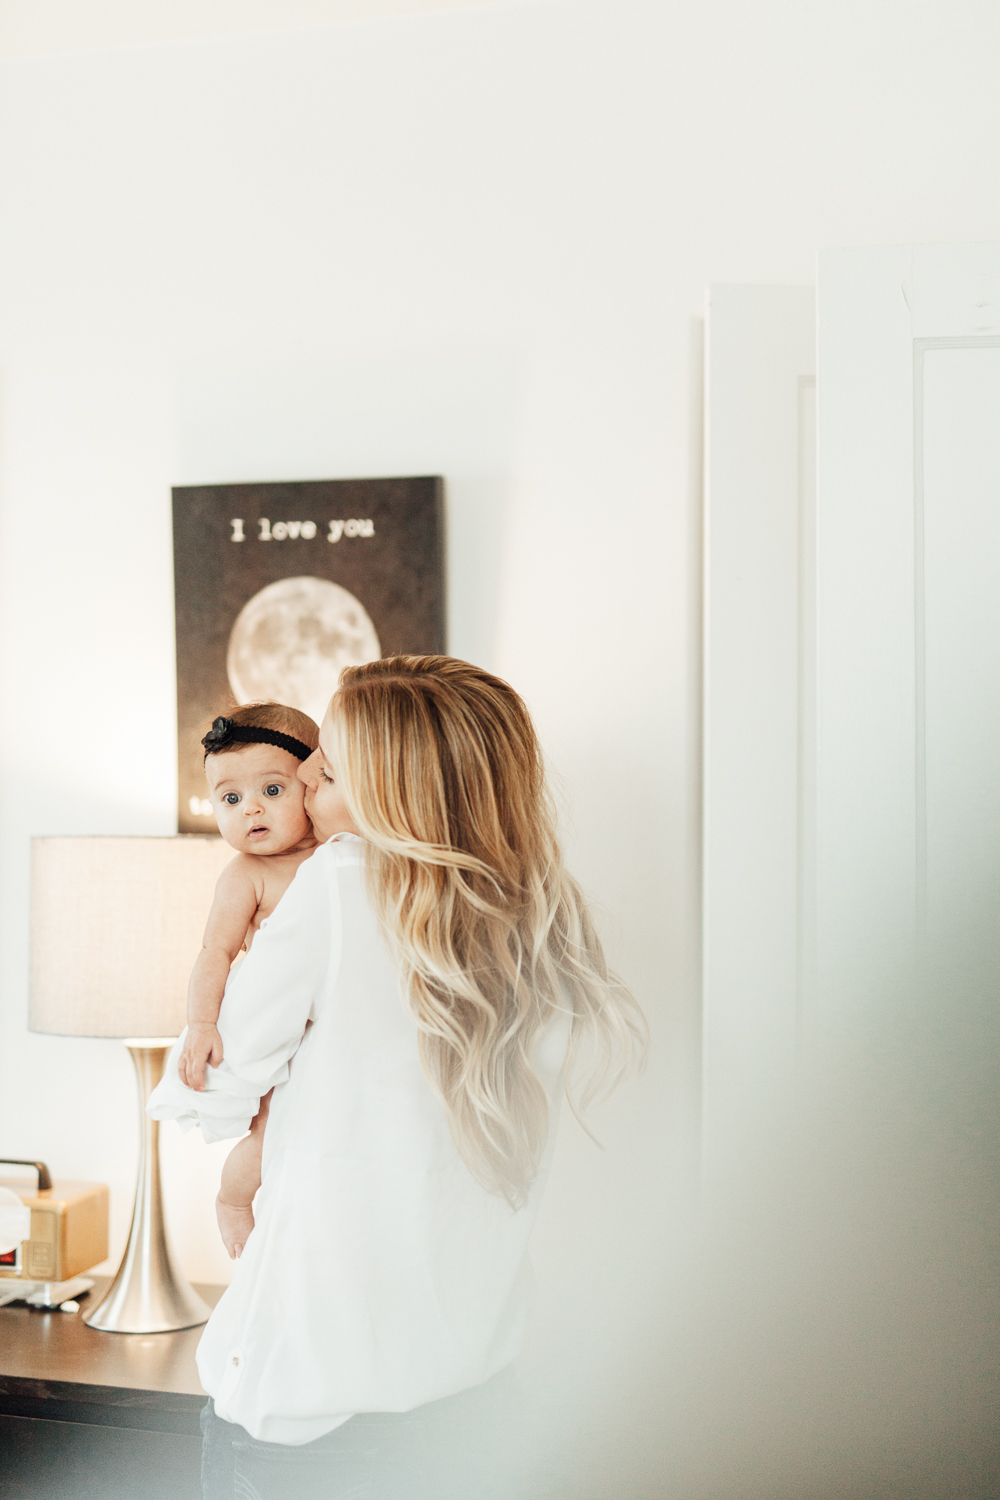 COZY-AND-INTIMATE-PHOTO-OF-MOM-AND-DAUGHTER-IN-THE-HOME-SALT-LAKE-CITY-UT